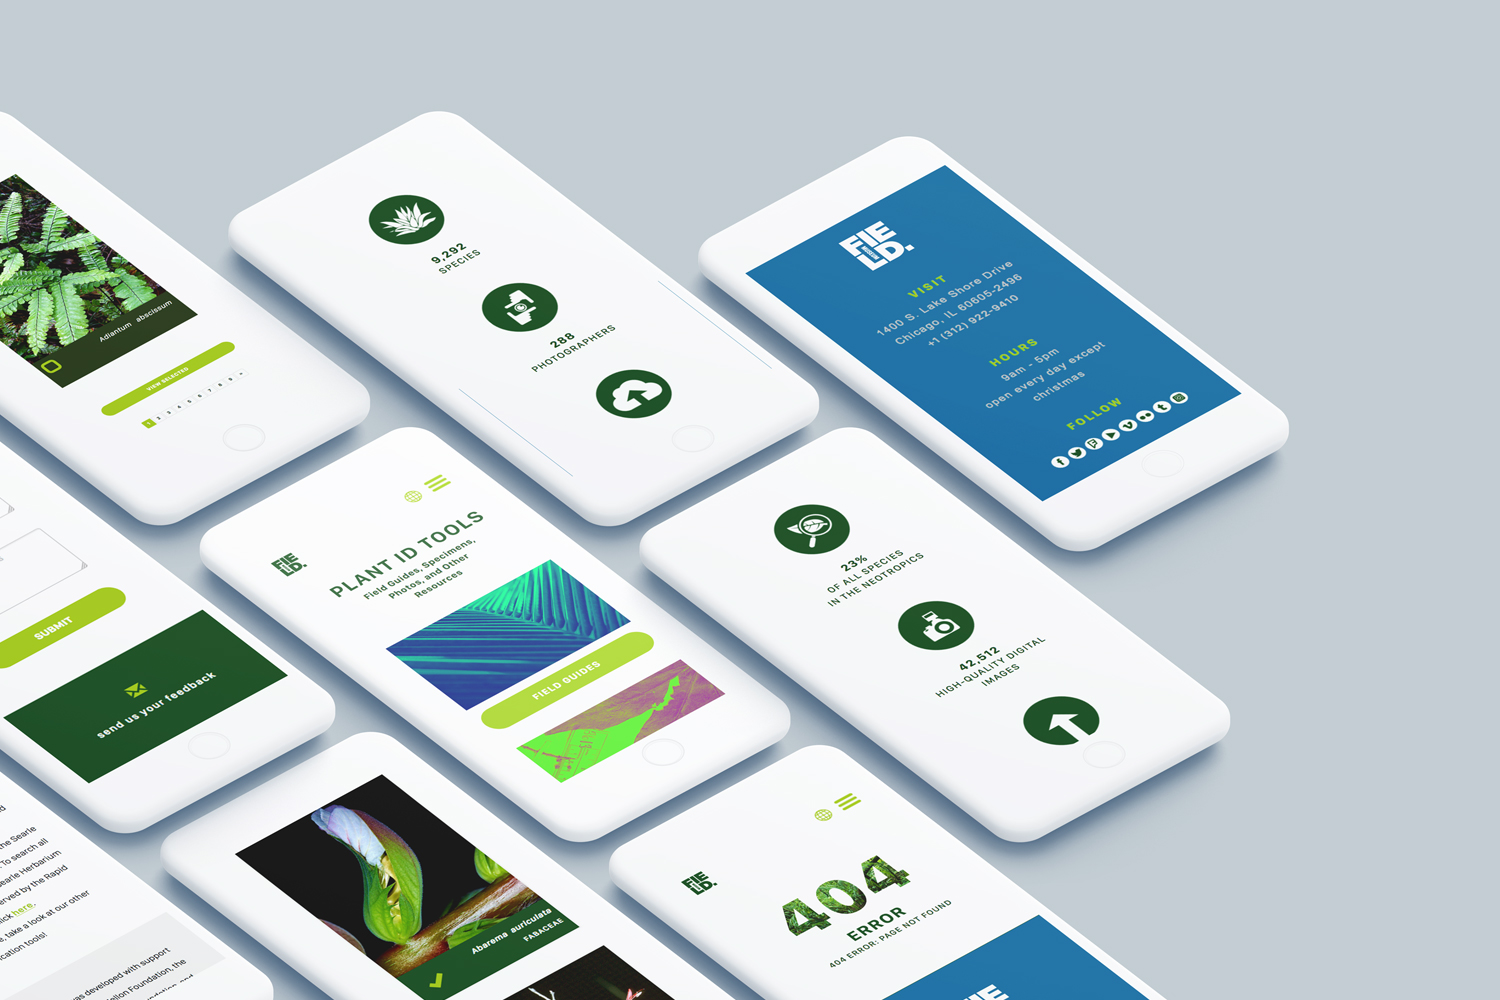 Several iPhone mock-ups in perspective layout.